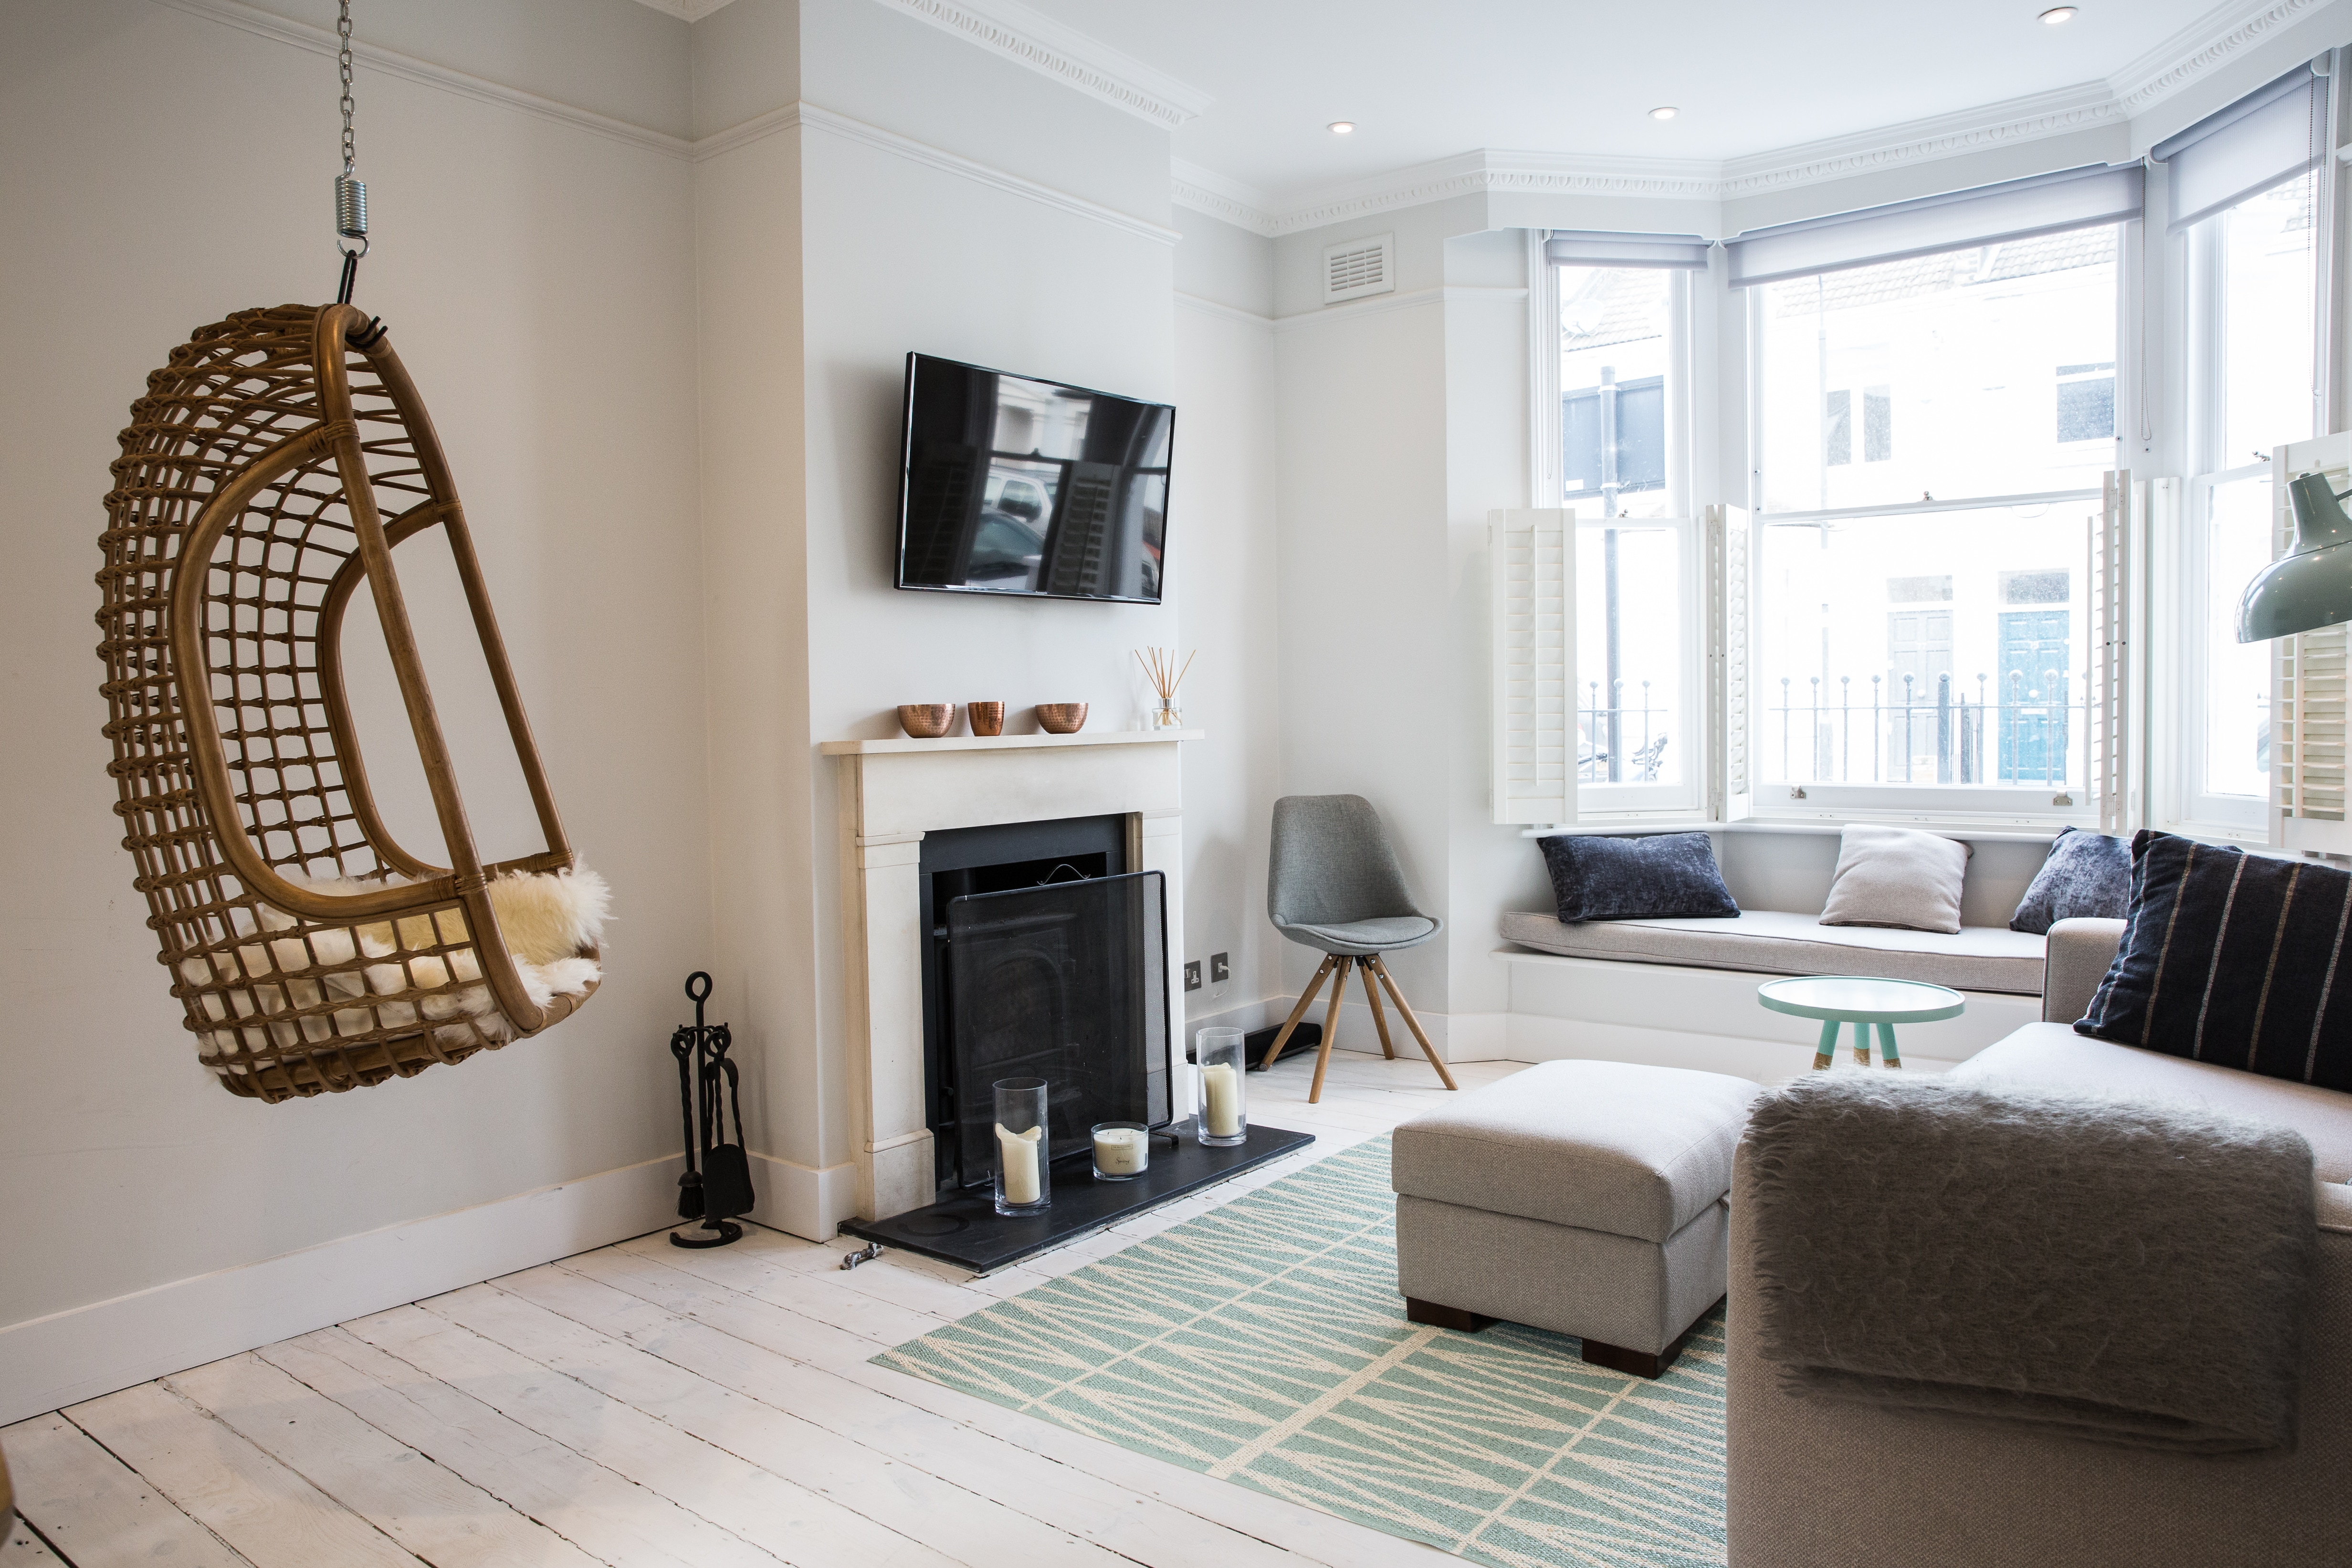 Property Image 1 - Picturesque Fulham house, 3 beds, sleeps 6